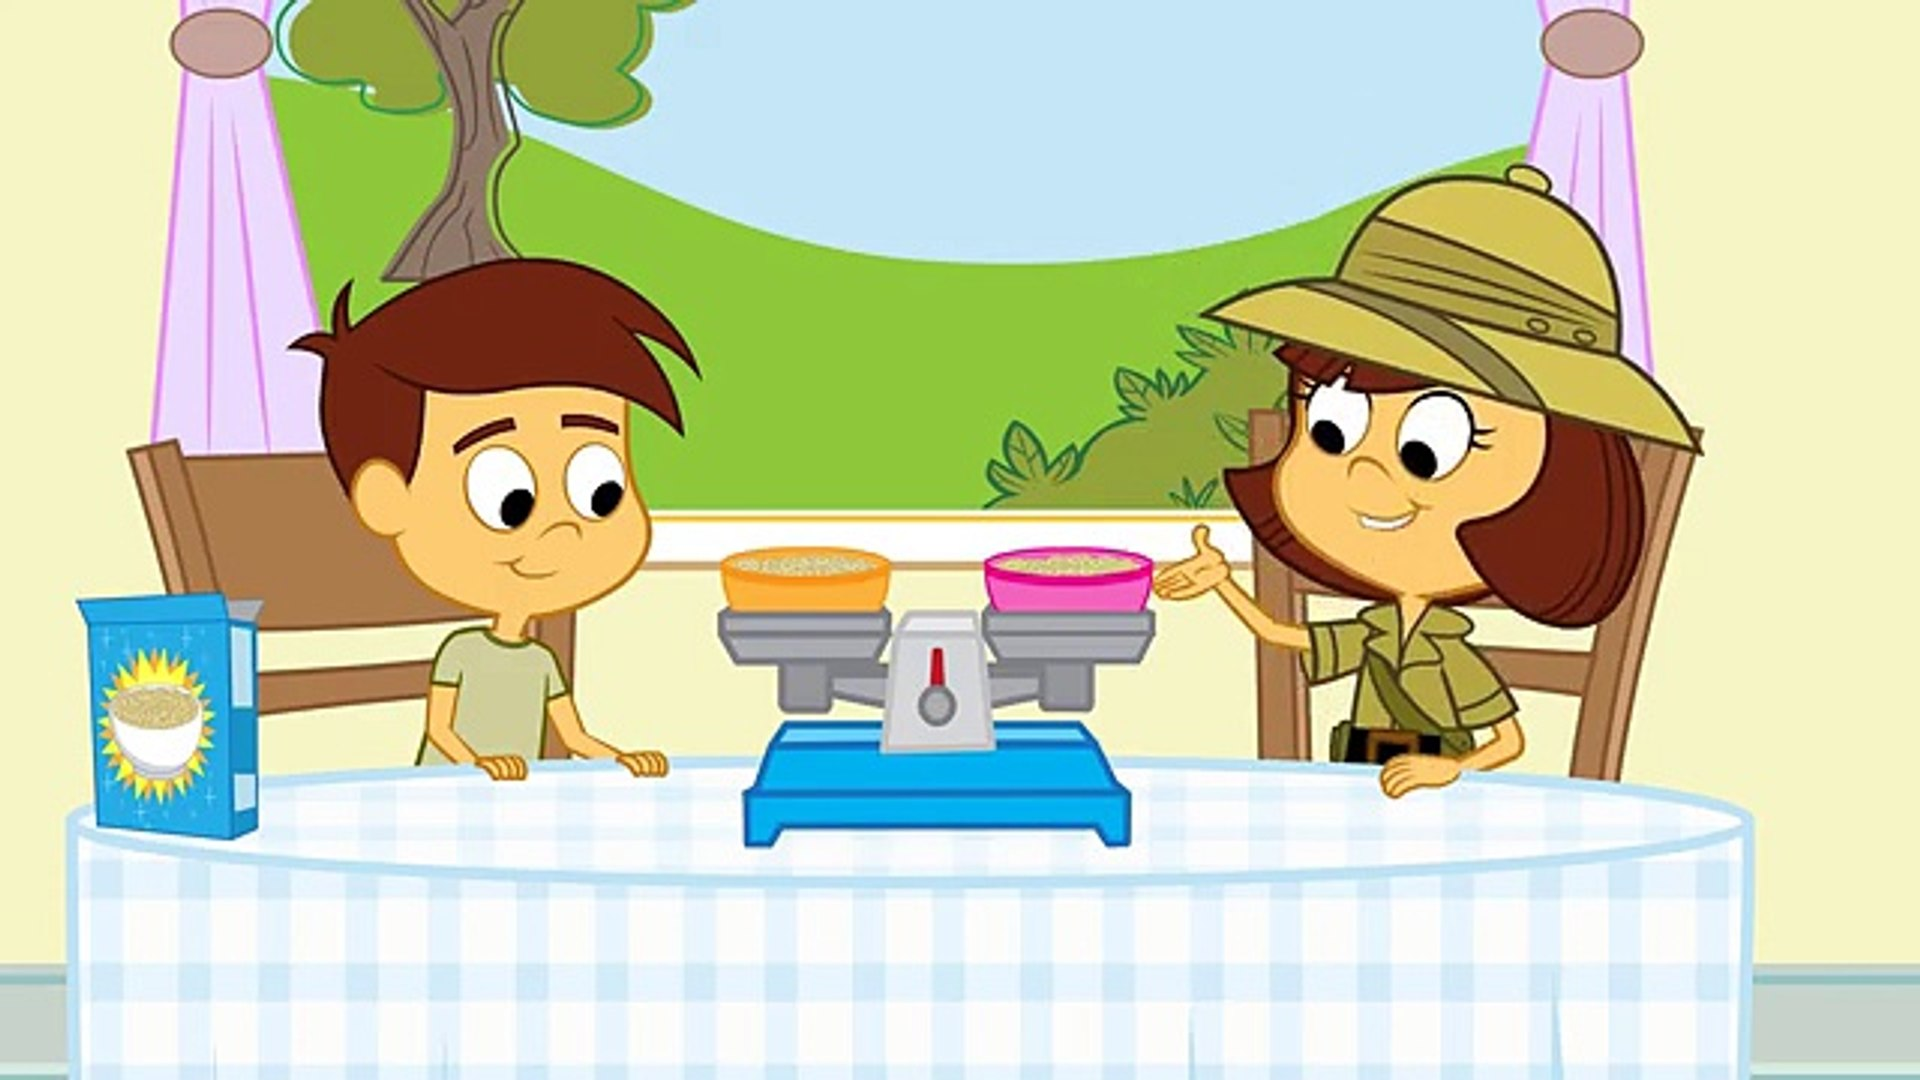 Cartoons for Children. Math - Measurement and Balance. Videos for Kids. Education for kids 1st Grade